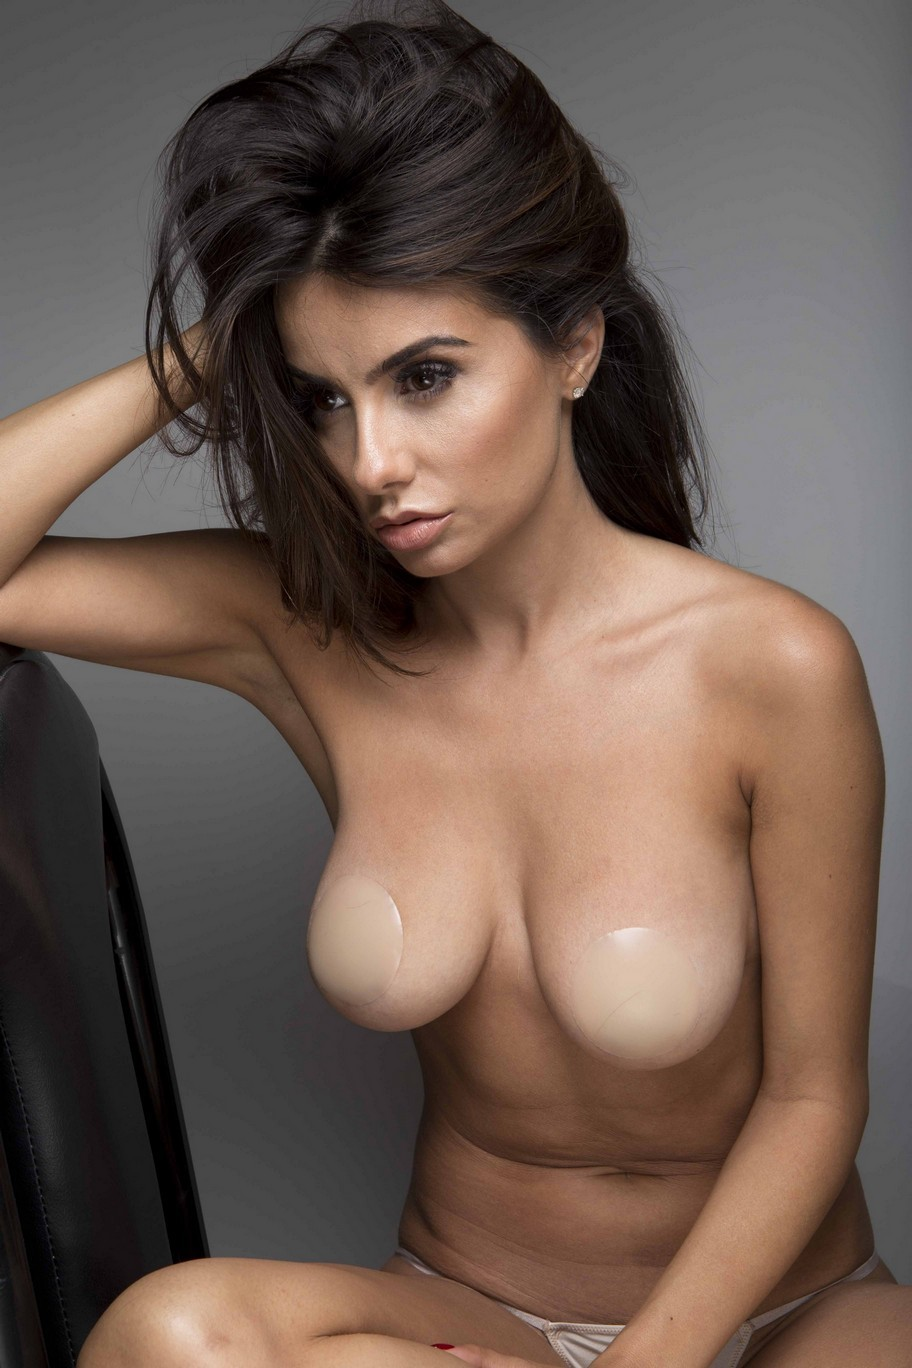 Mikaela hoover nude icloud new pictures